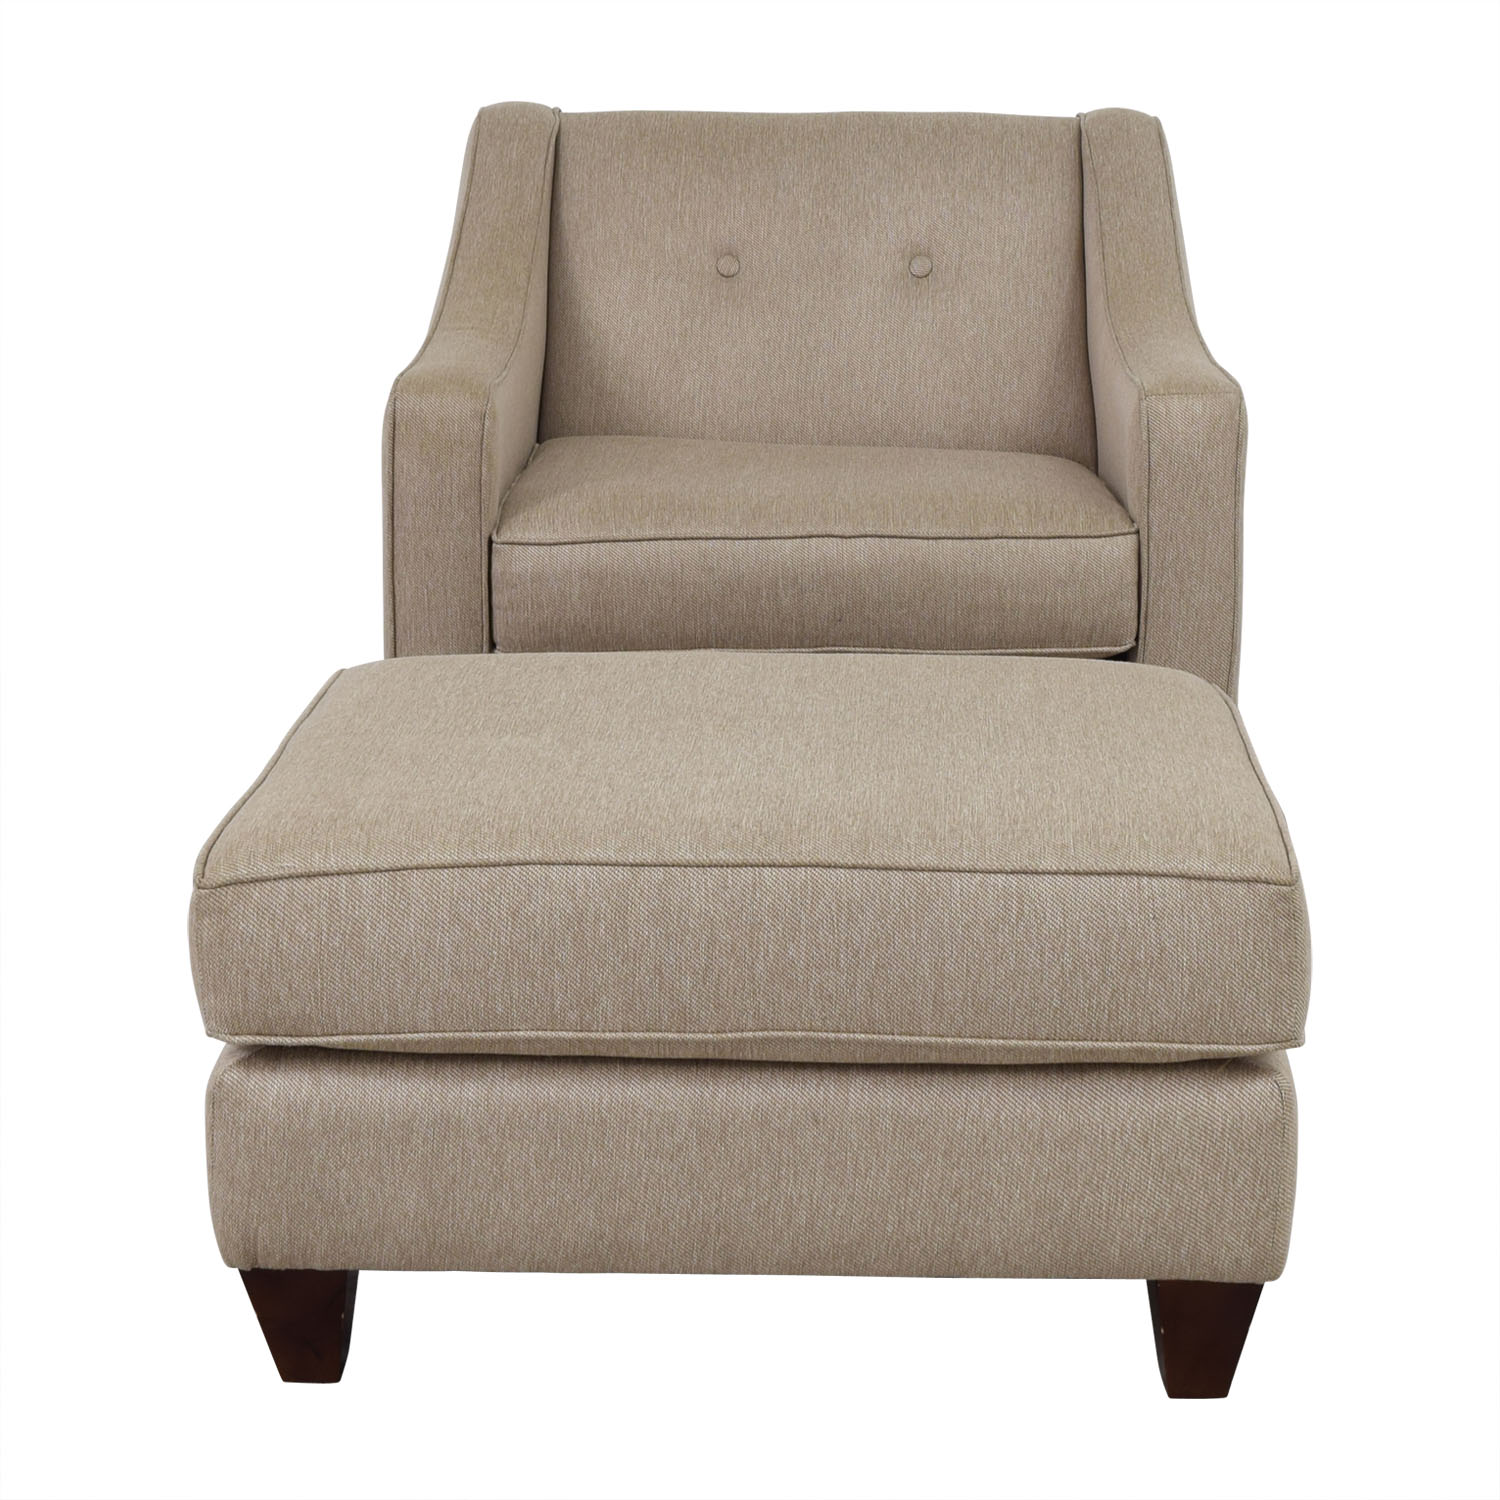 Star Furniture Star Furniture Colton Tufted Chair and Ottoman TAN